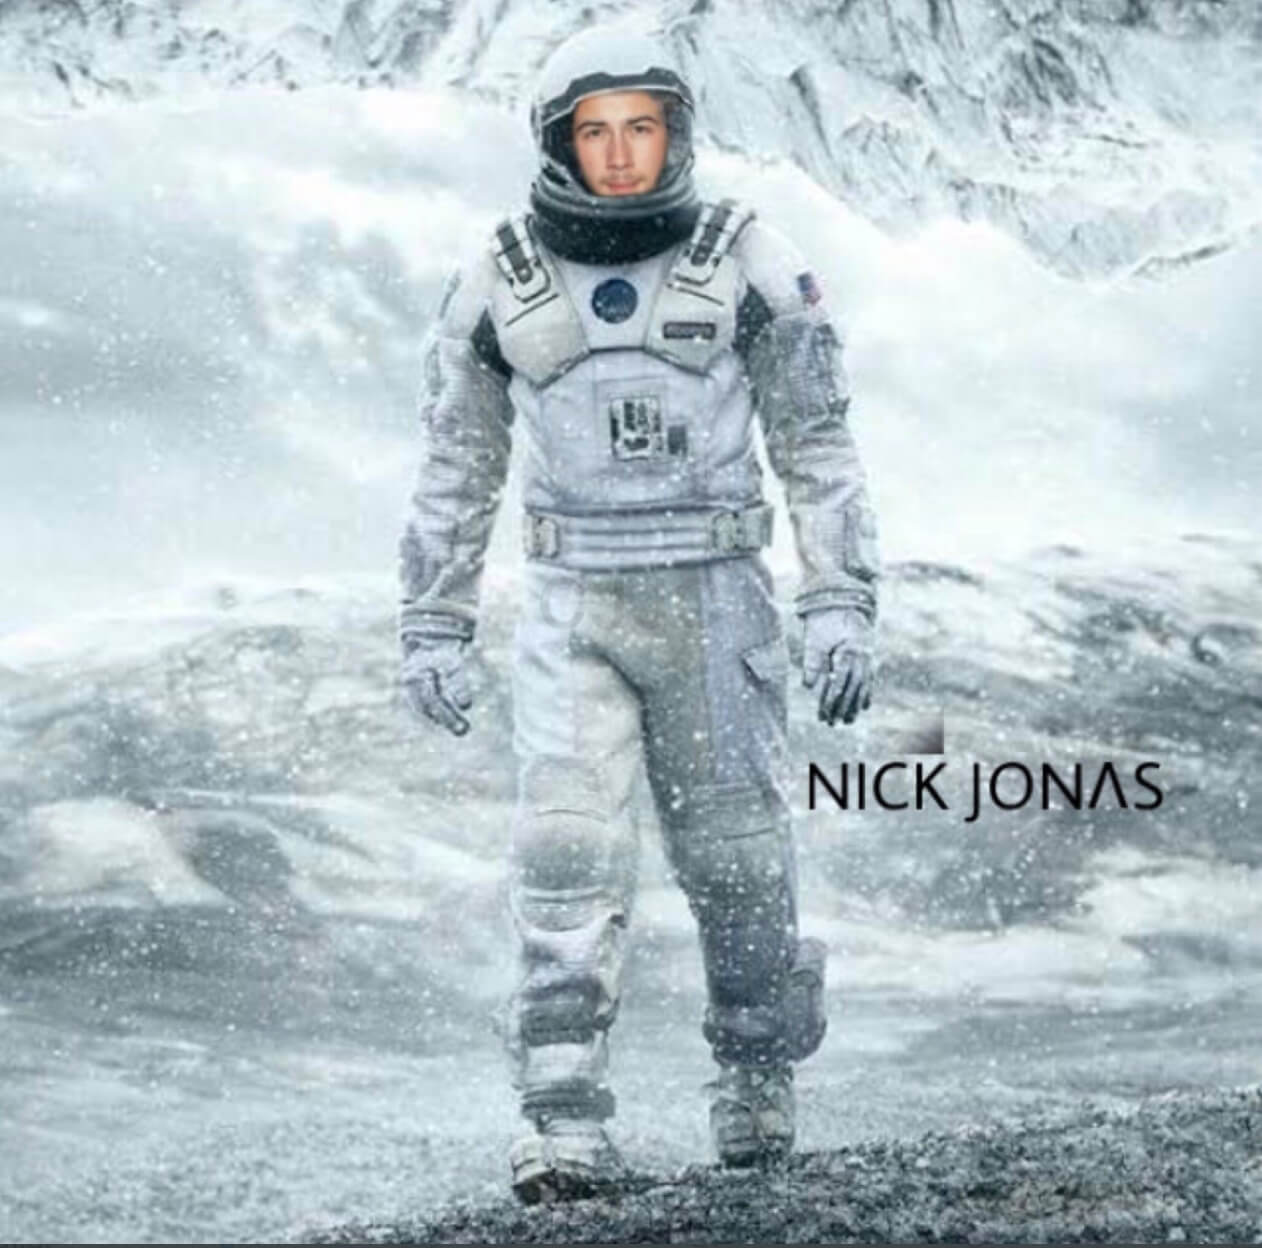 Look Out, Nick Jonas – the Cancel Mob Is Circling You